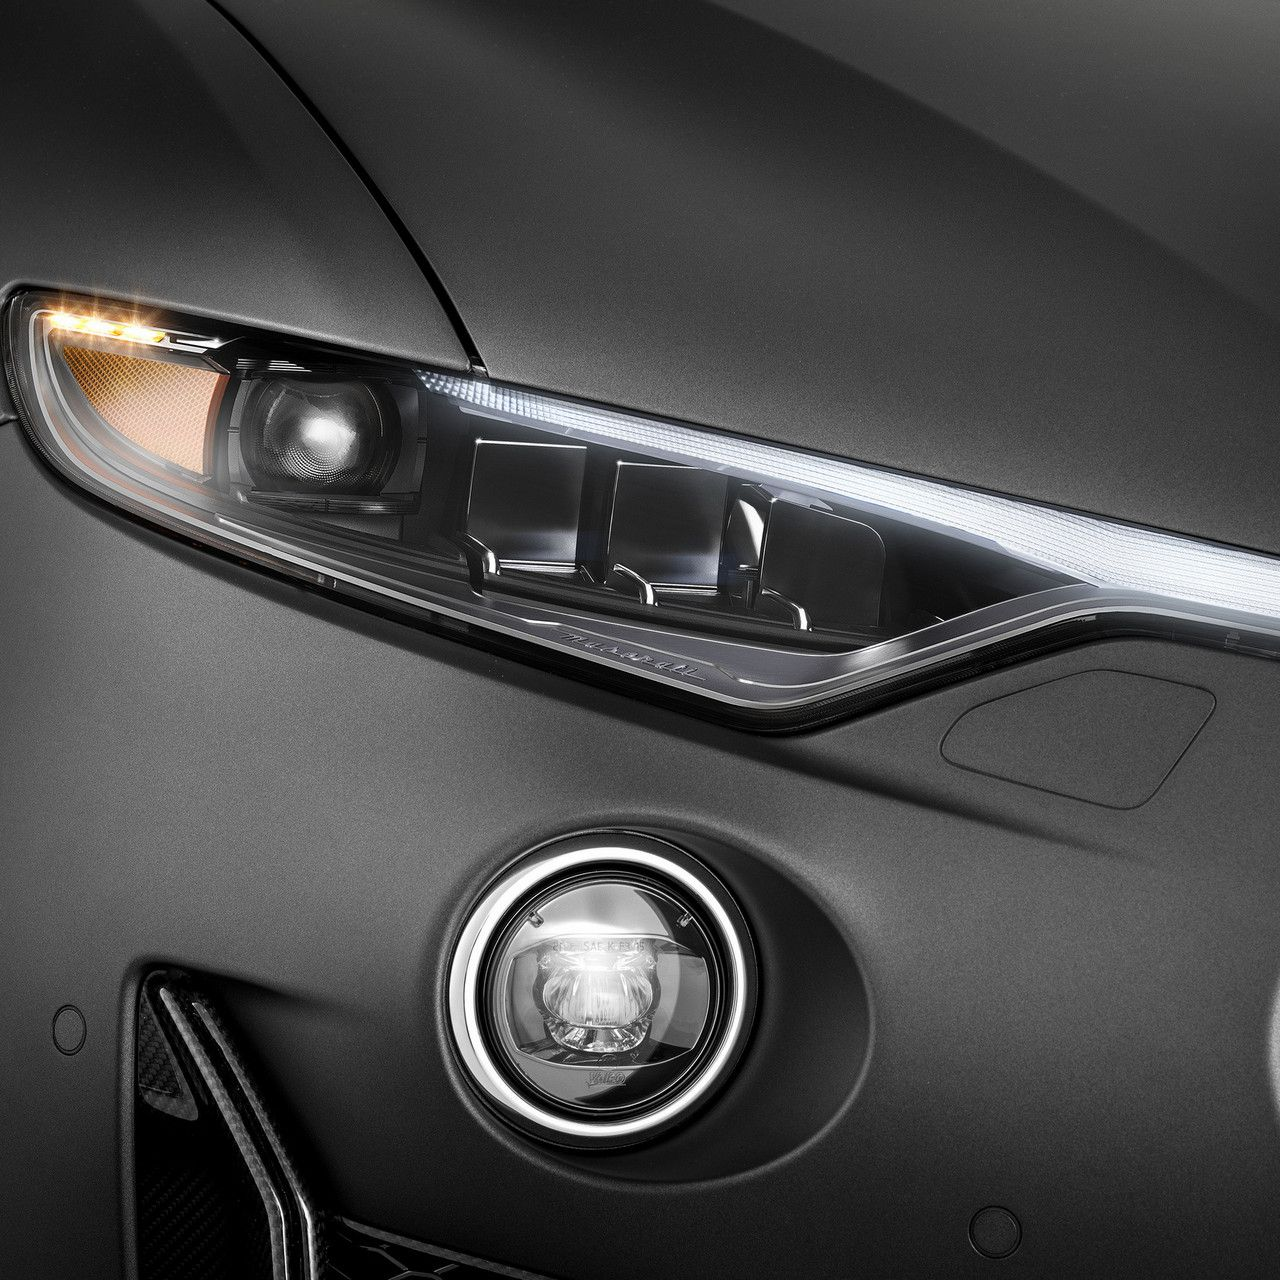 Full-led headlights in detail for Maserati Levante